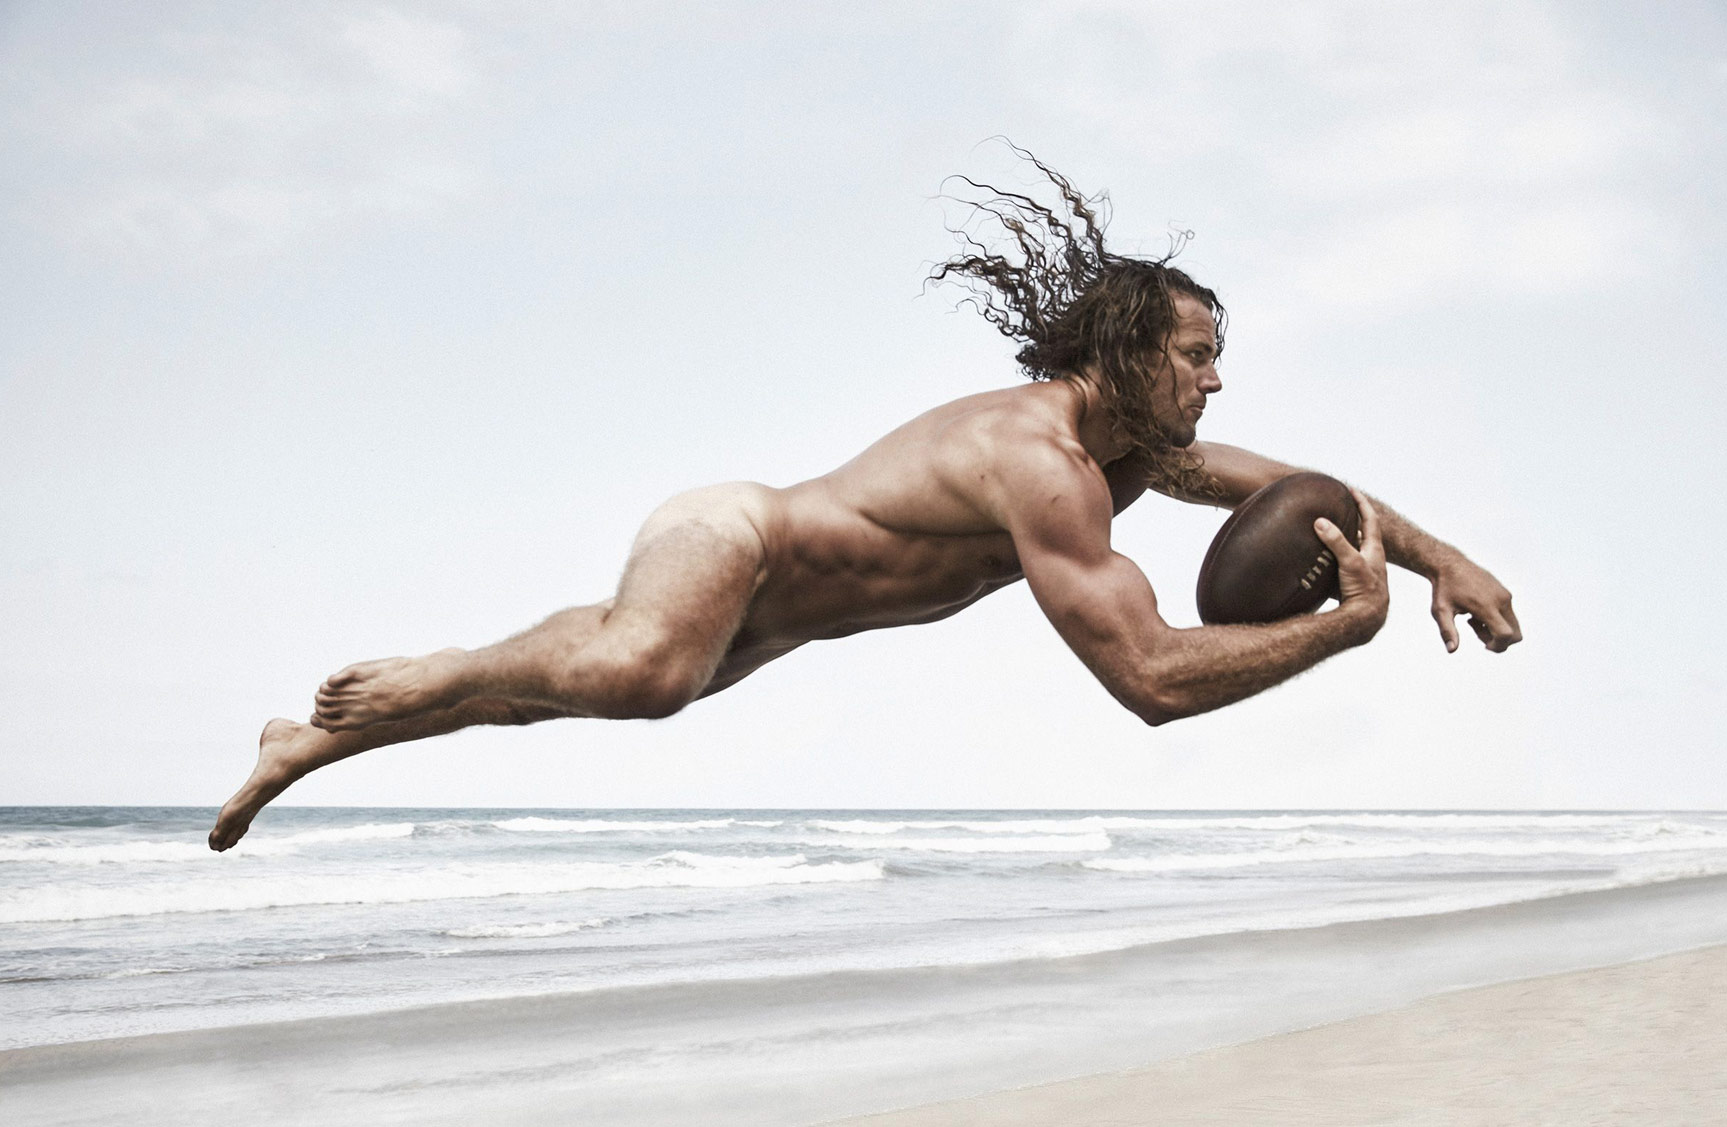 ESPN Magazine The Body Issue 2015 - Todd Clever / Тодд Клевер - Культ тела журнала ESPN